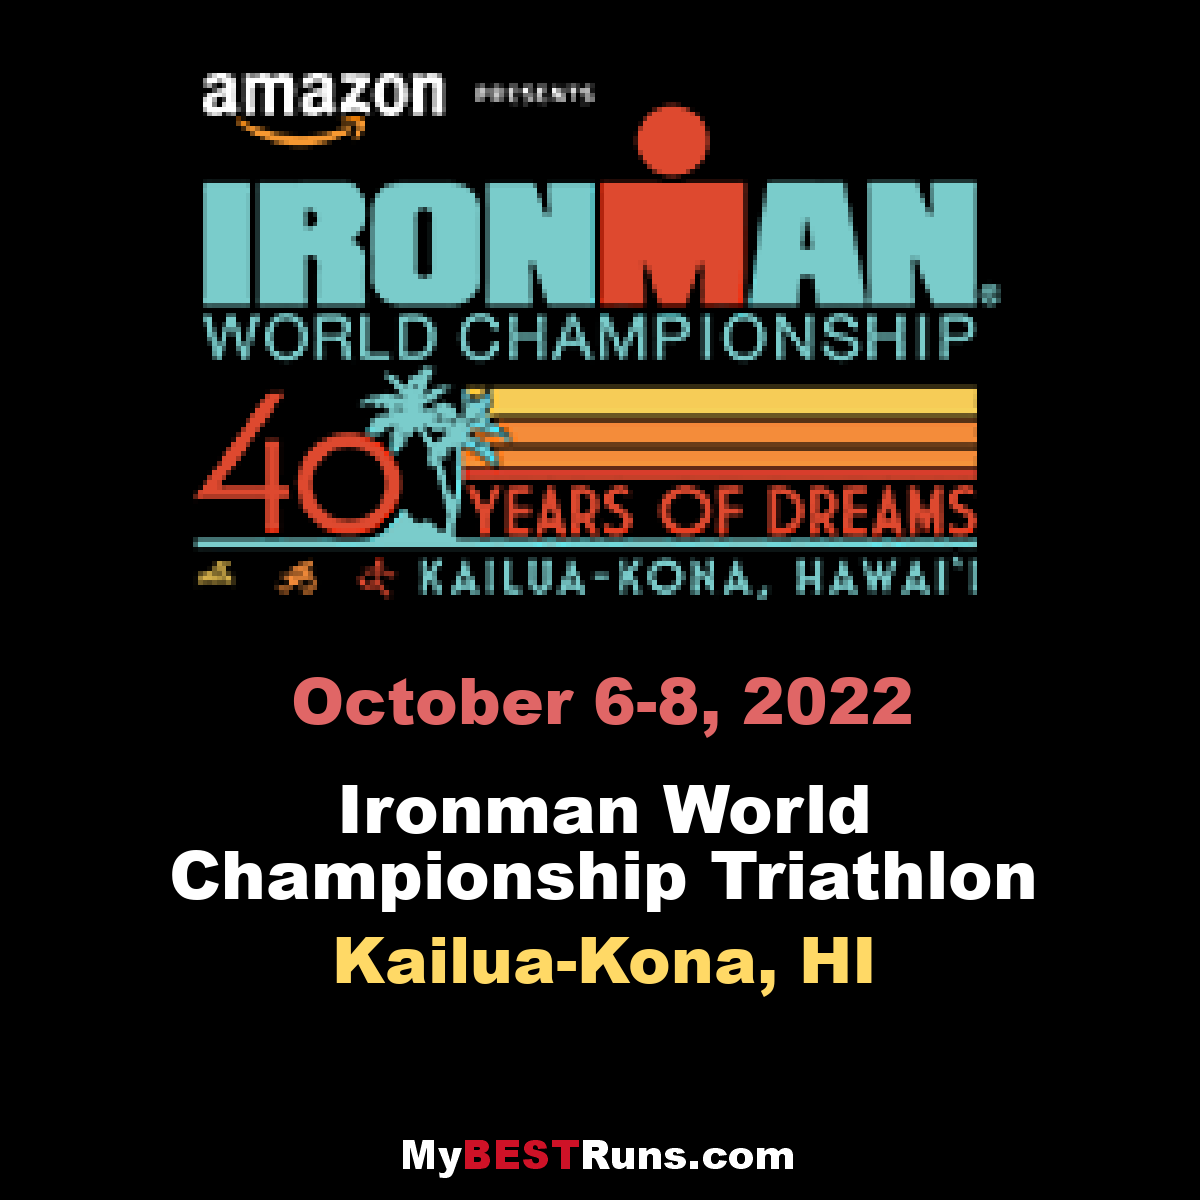 Ironman World Championship Triathlon